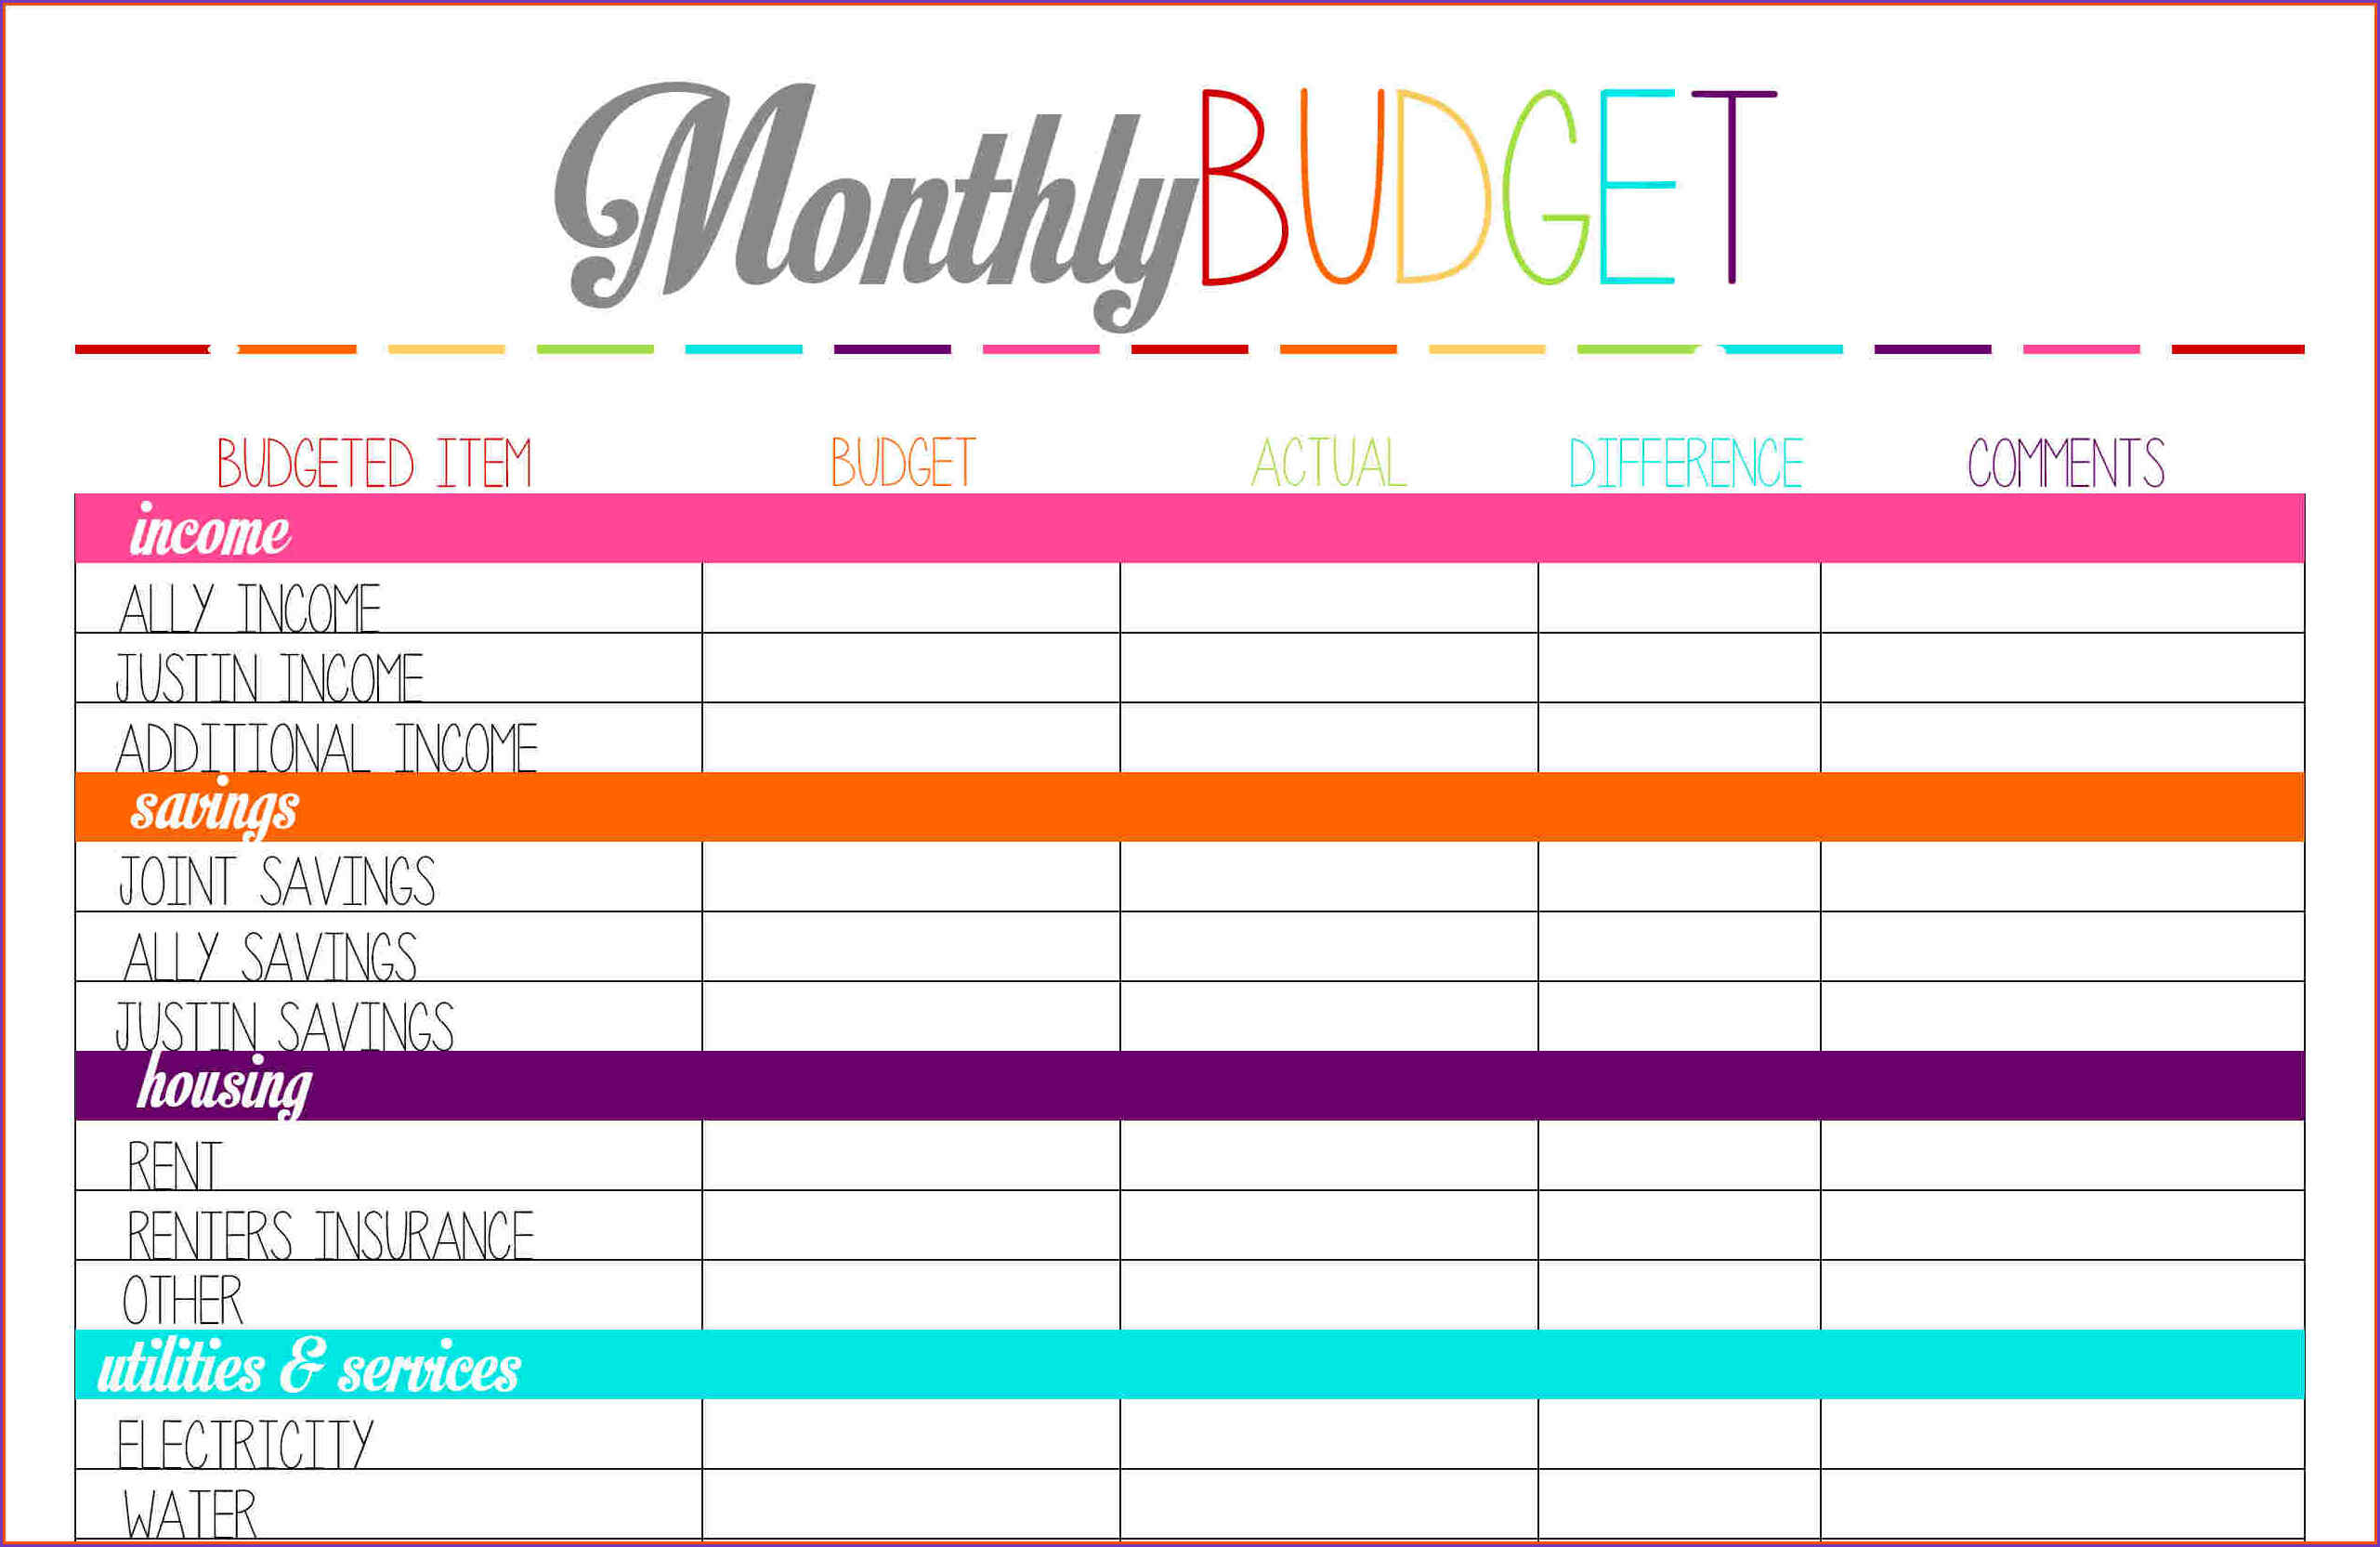 001 Home Budget Spreadsheet Free Monthly Planner - Free Printable | Easy Budget Planner Free Printable Worksheets